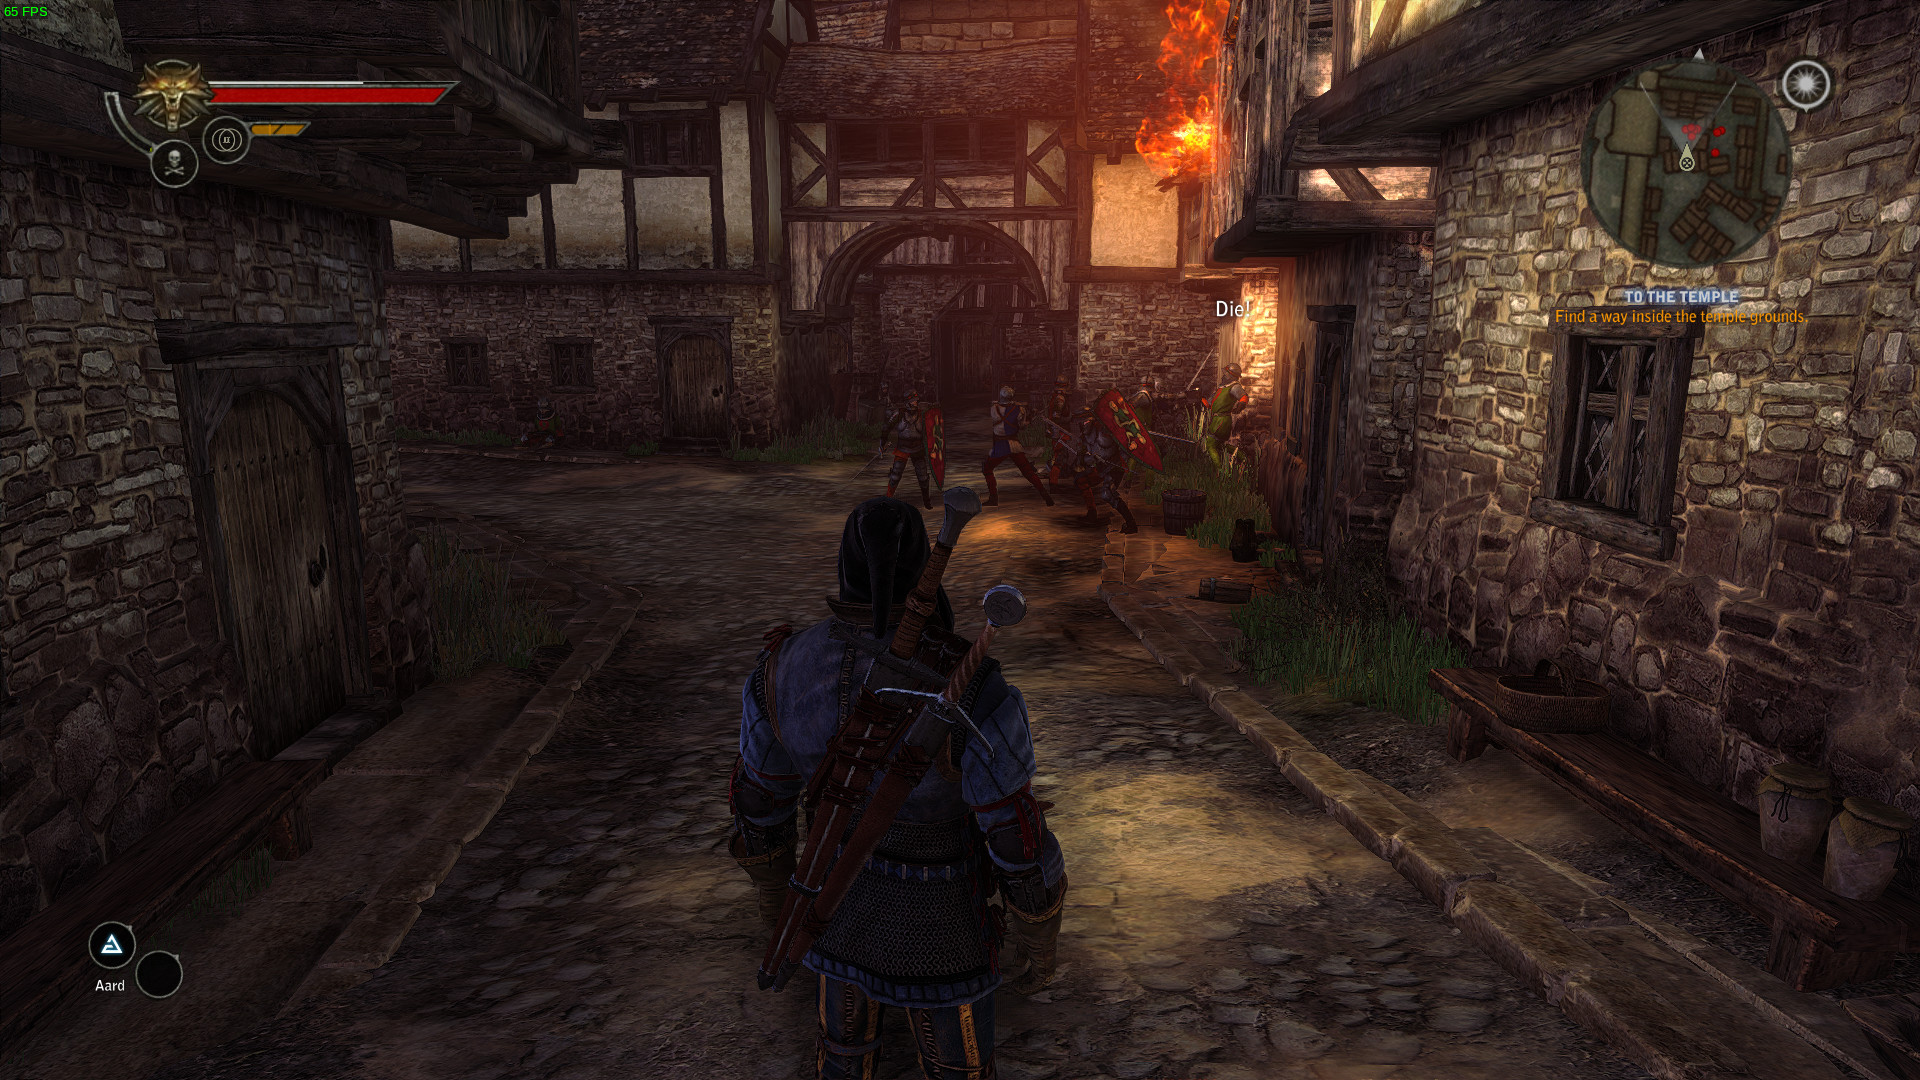 The Witcher 2 Has A New Beta For Linux, The Improvements Are